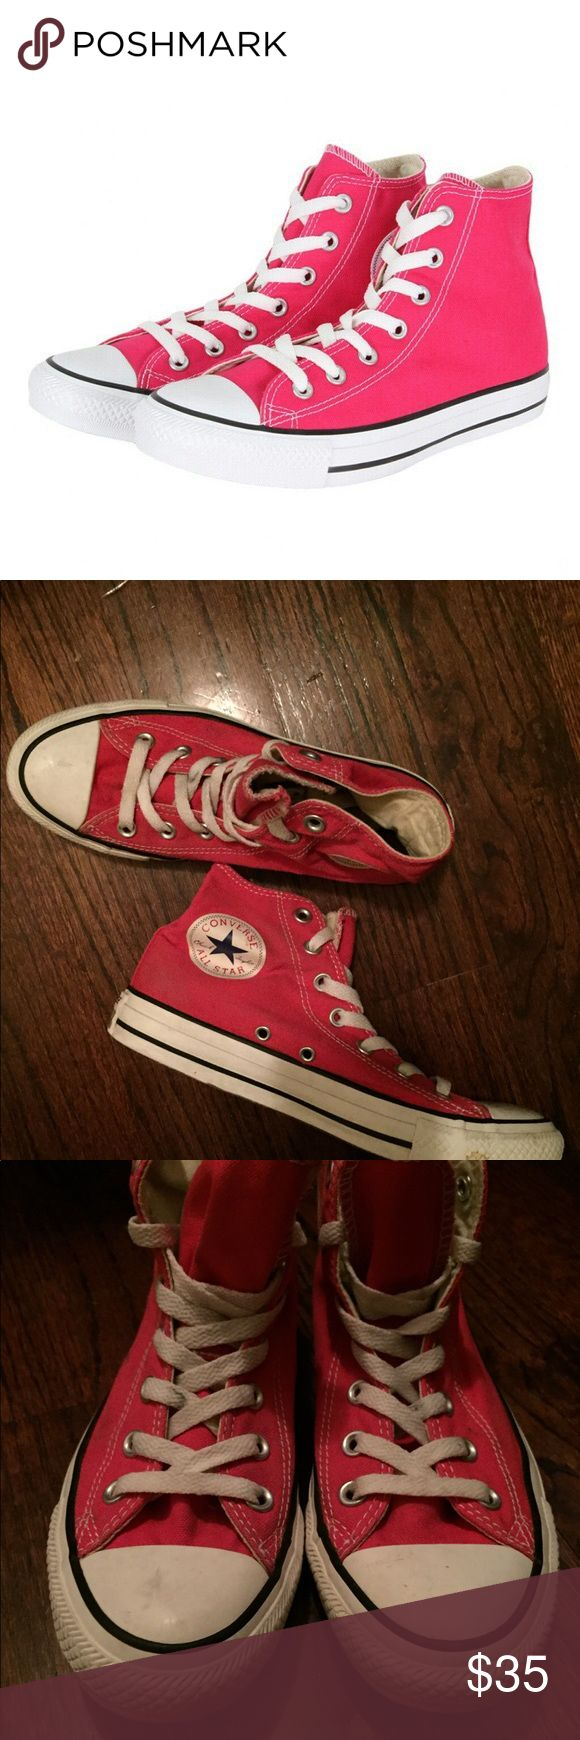 Pink High Top Converse Sneakers Pink High Top Converse Sneakers Size Women's 7 Barely used, GREAT condition Cute versatile shoe that can be worn everyday for a pop of color Converse Shoes Sneakers